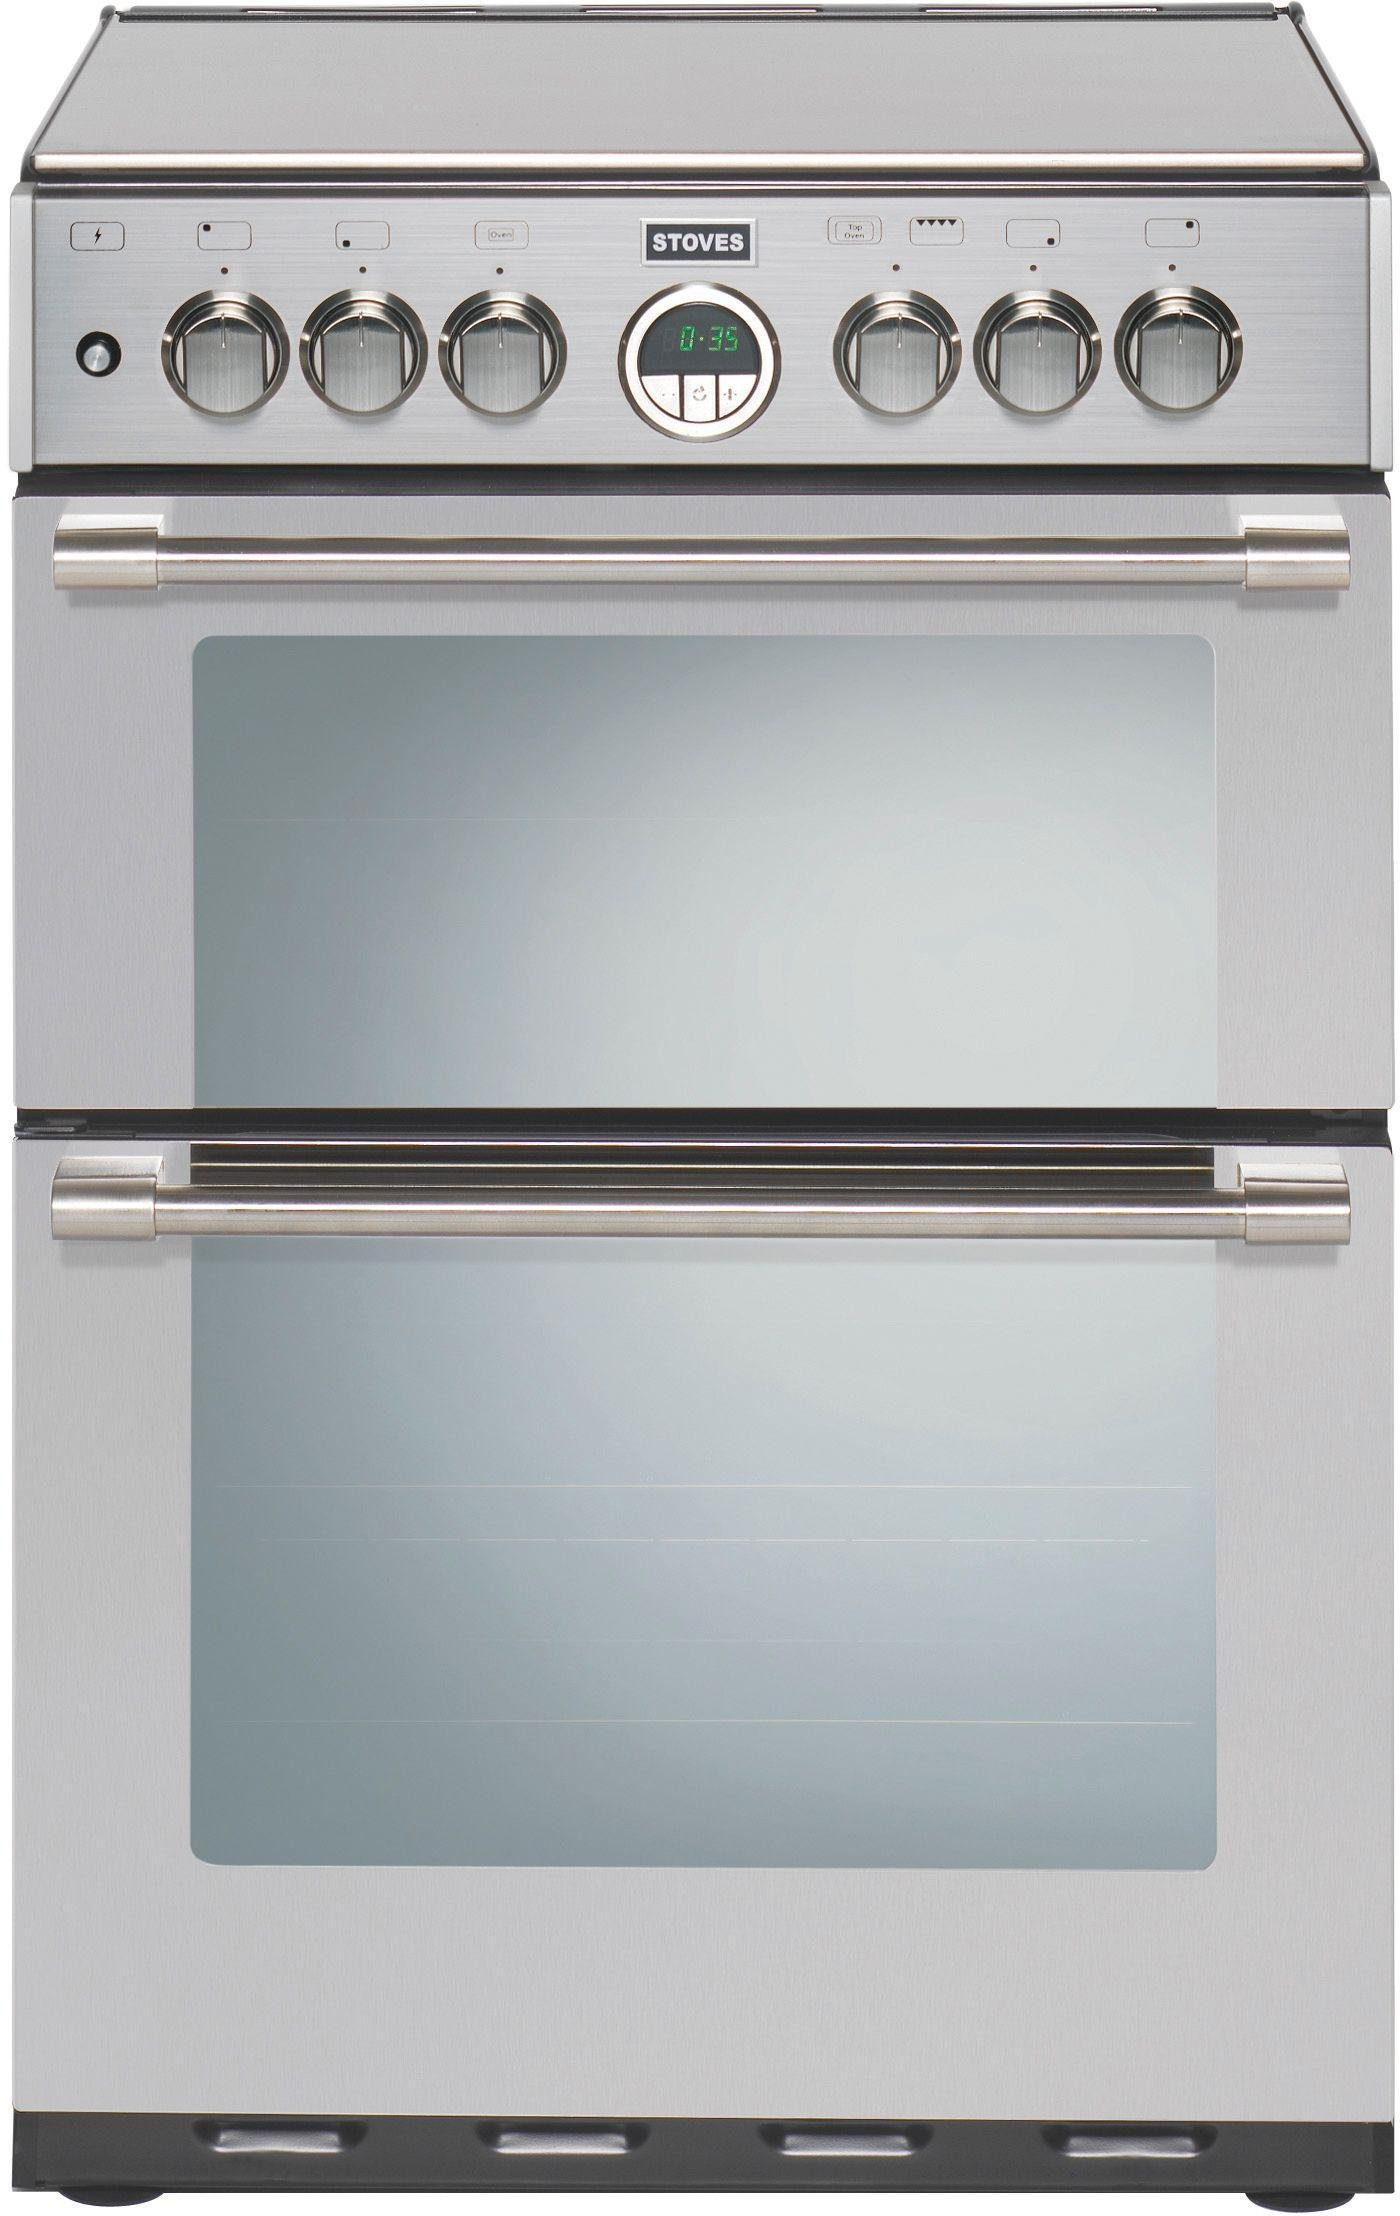 Stoves Sterling 600G Double Gas Cooker - Stainless Steel